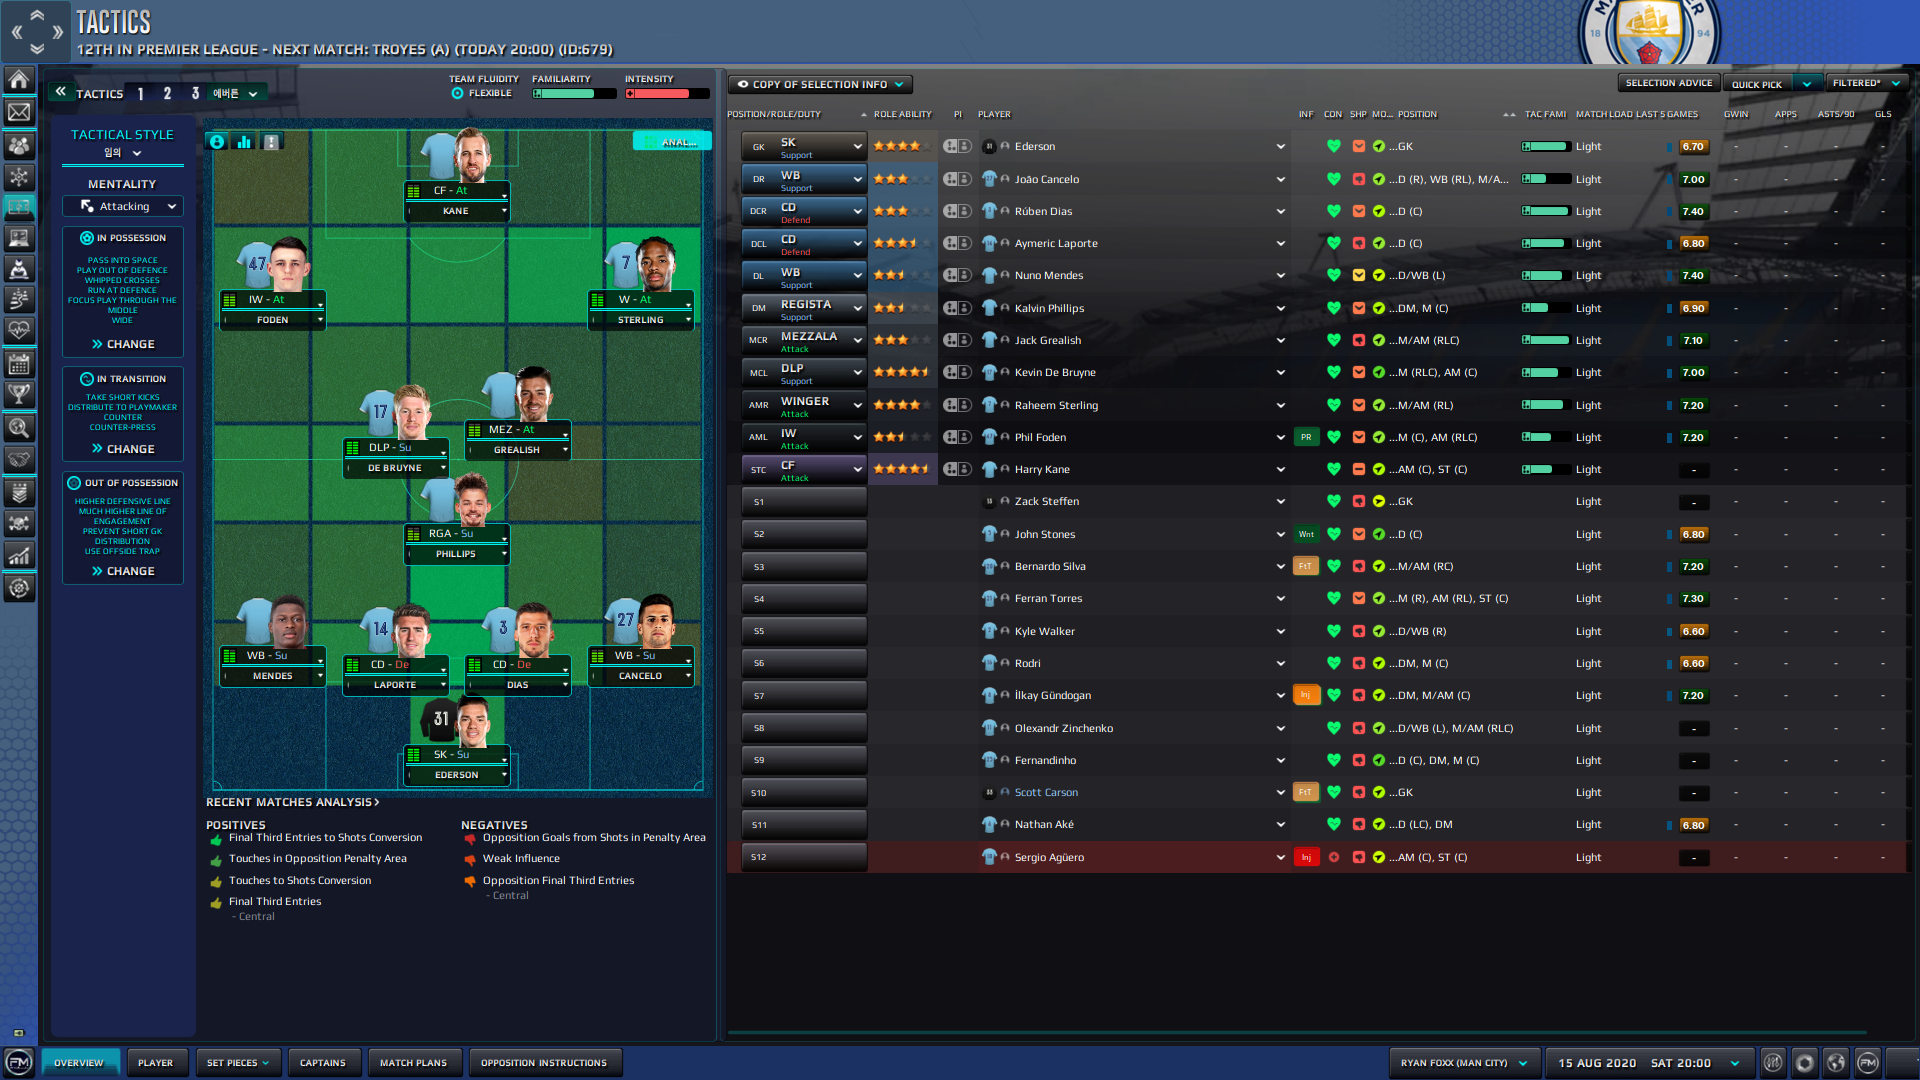 Football Manager 2021 25_07_2021 18_52_42.png